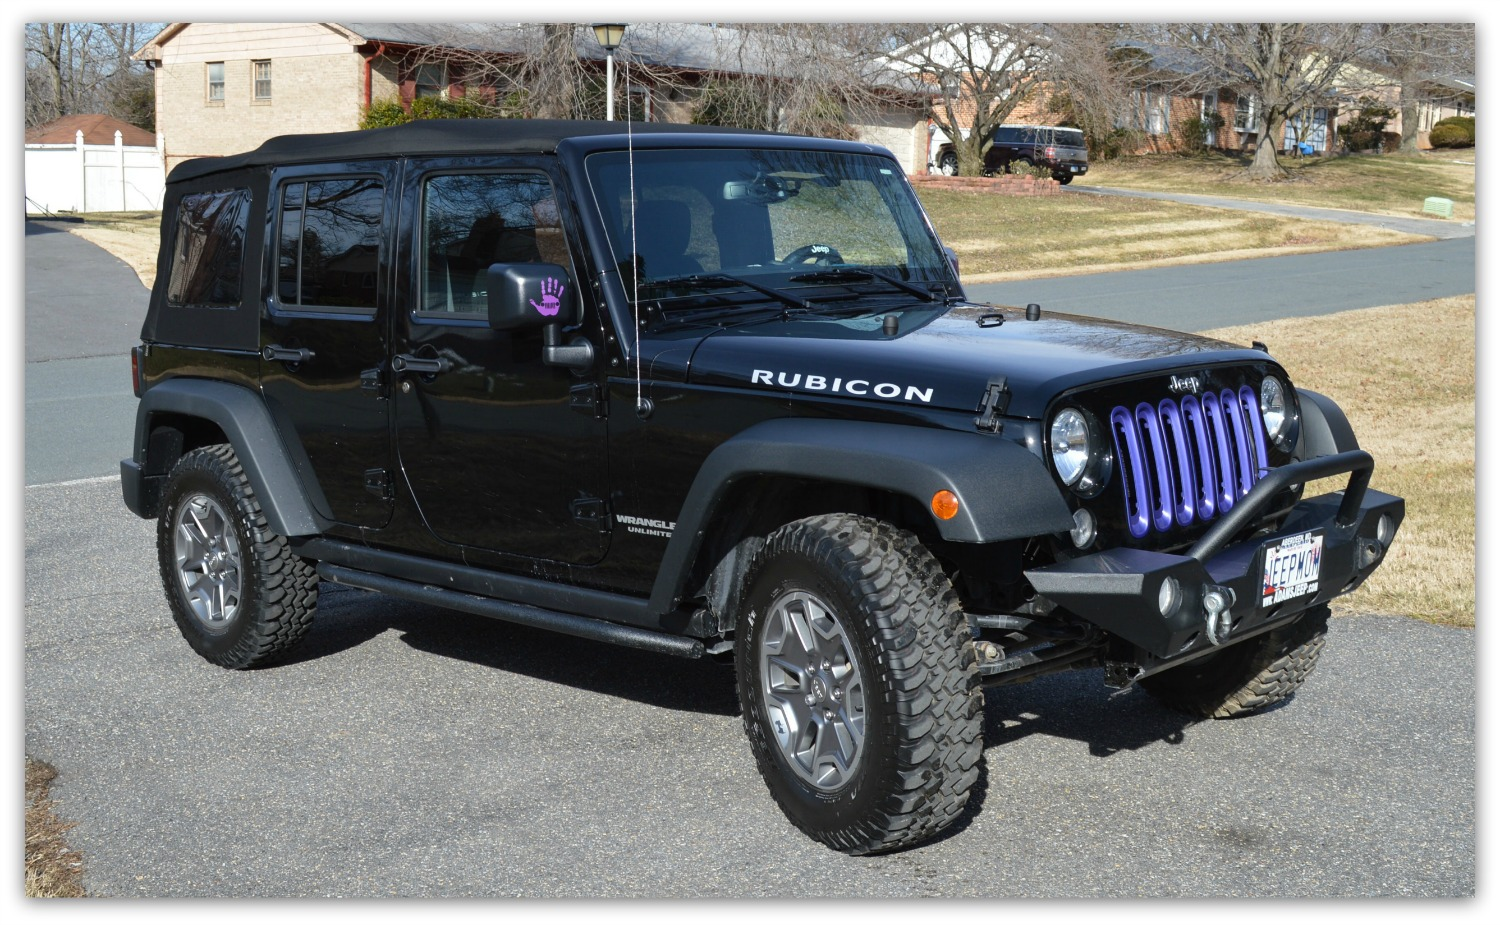 Types Of Jeeps >> Jeep Momma - Blog: Jeeps Are Not Meant to Be Dirty!